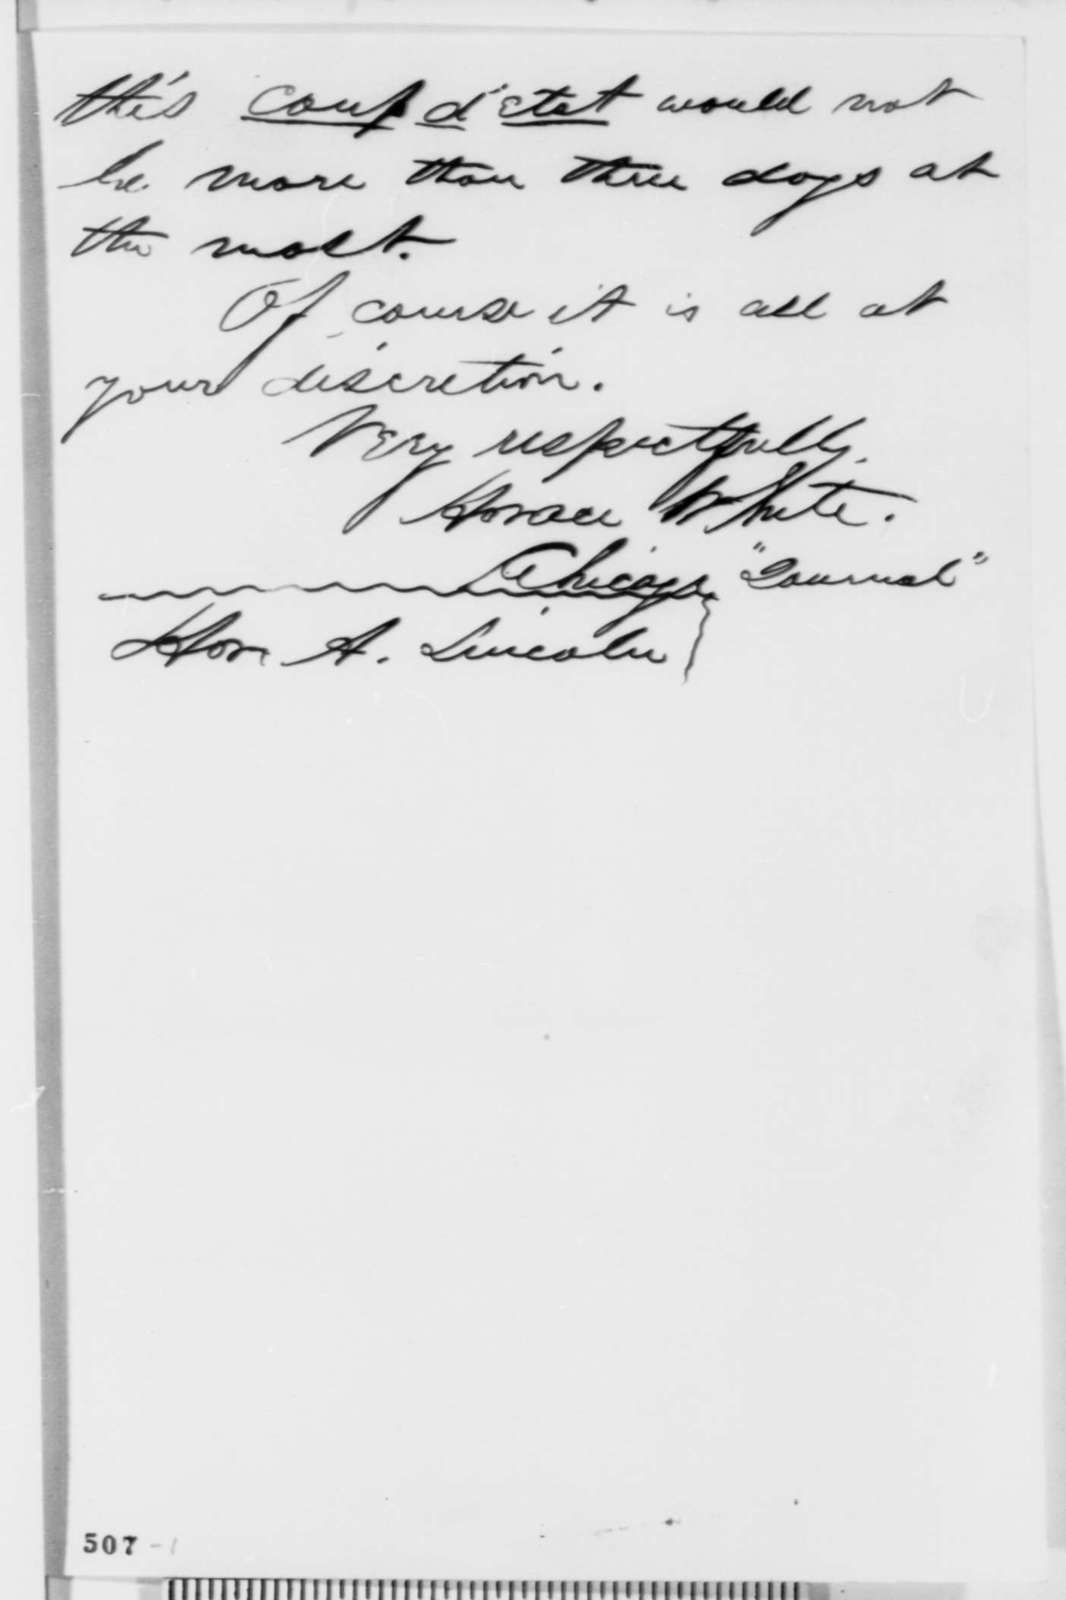 Horace White to Abraham Lincoln, Wednesday, October 25, 1854  (1854 election)